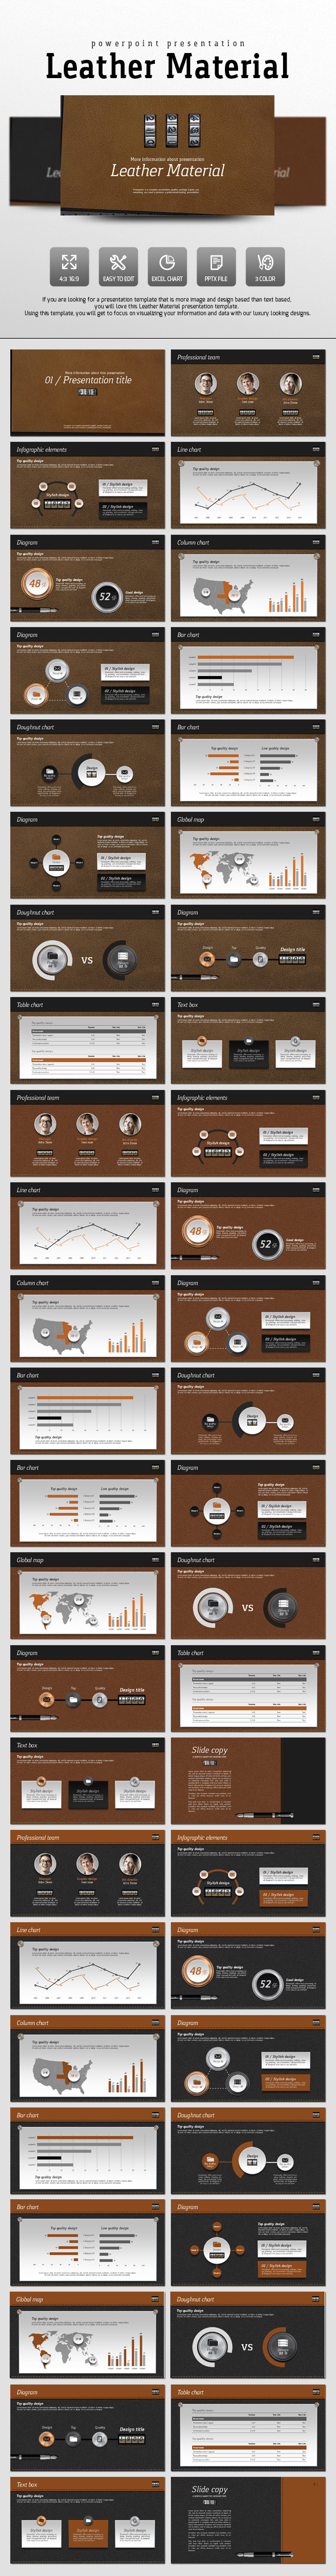 Leather Material - PowerPoint Templates Presentation Templates